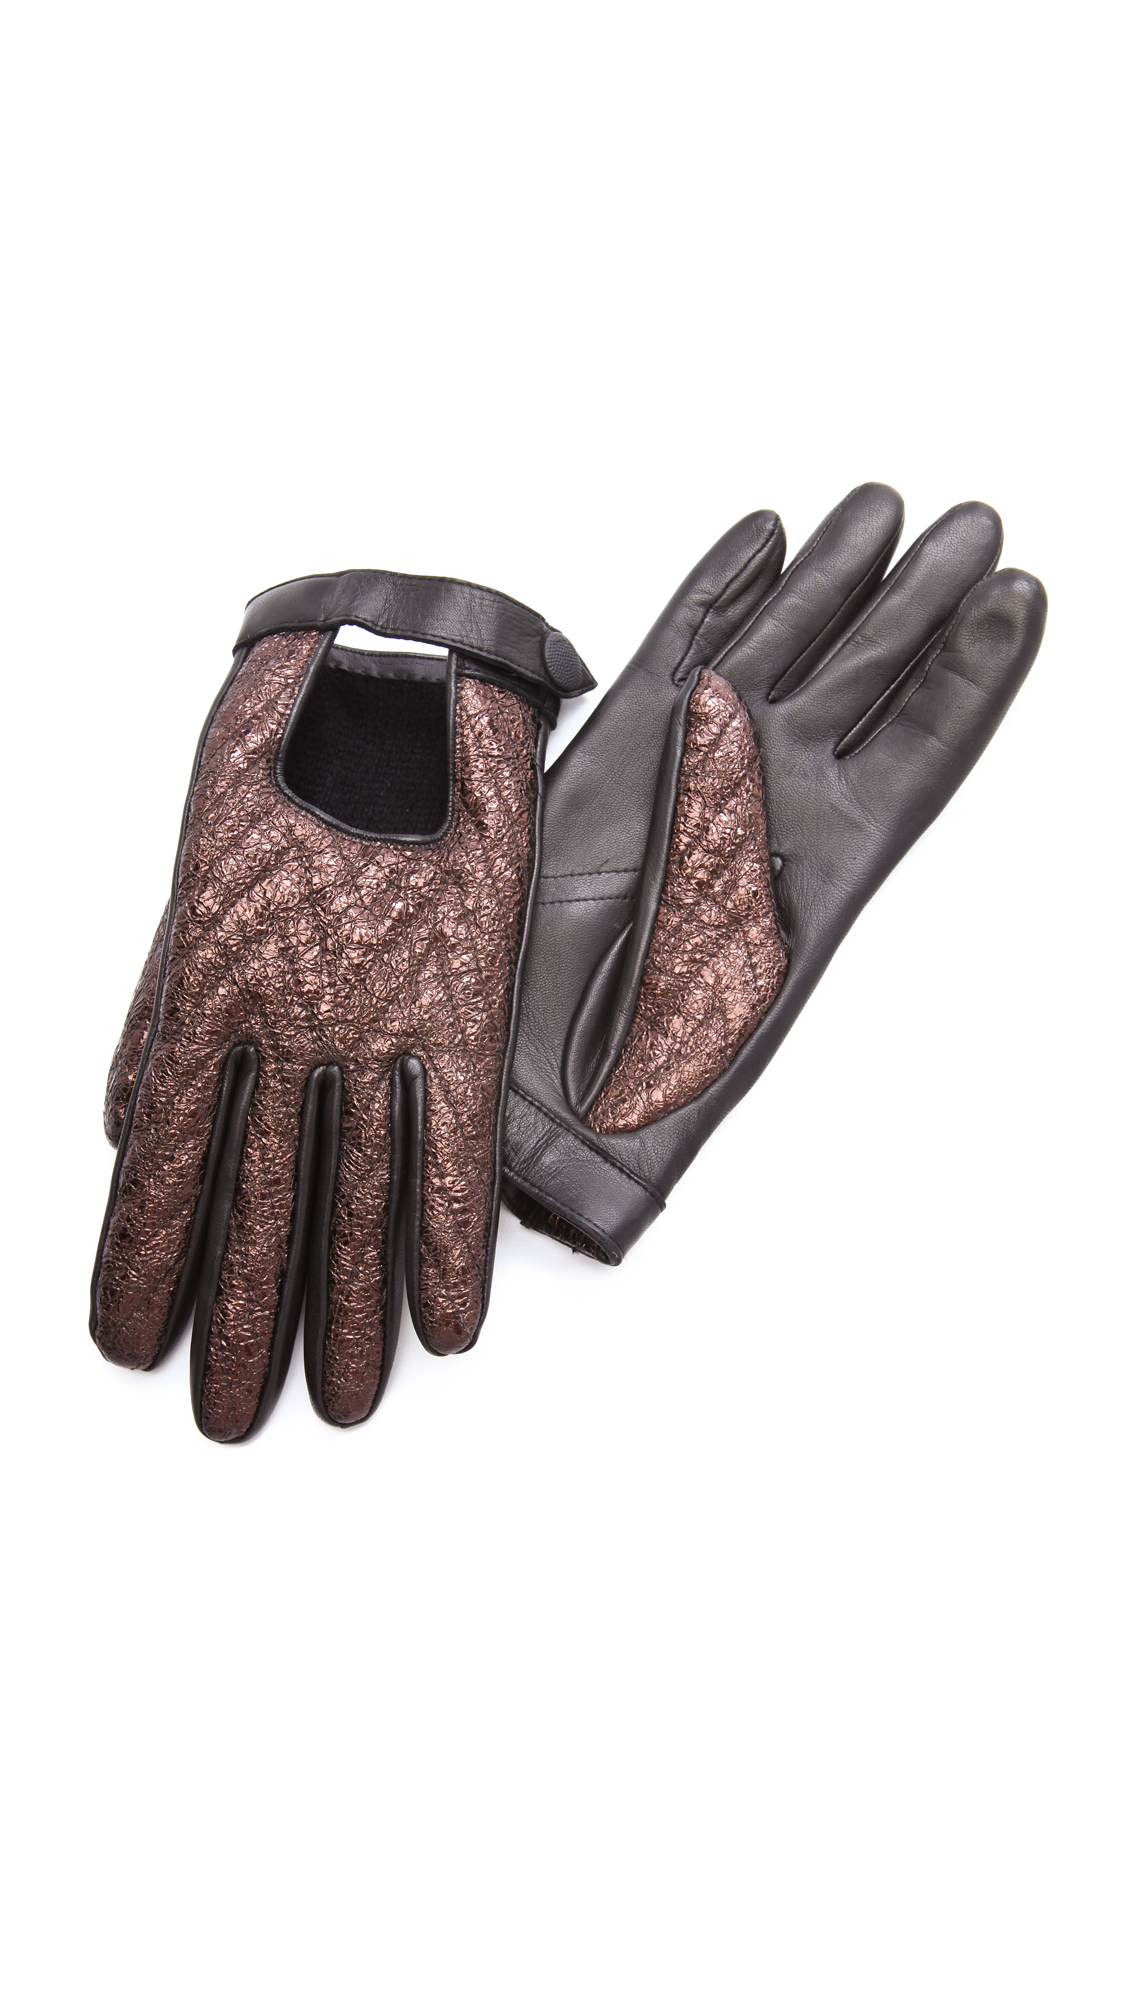 Quilted leather driving gloves - Quilted Leather Driving Gloves 48